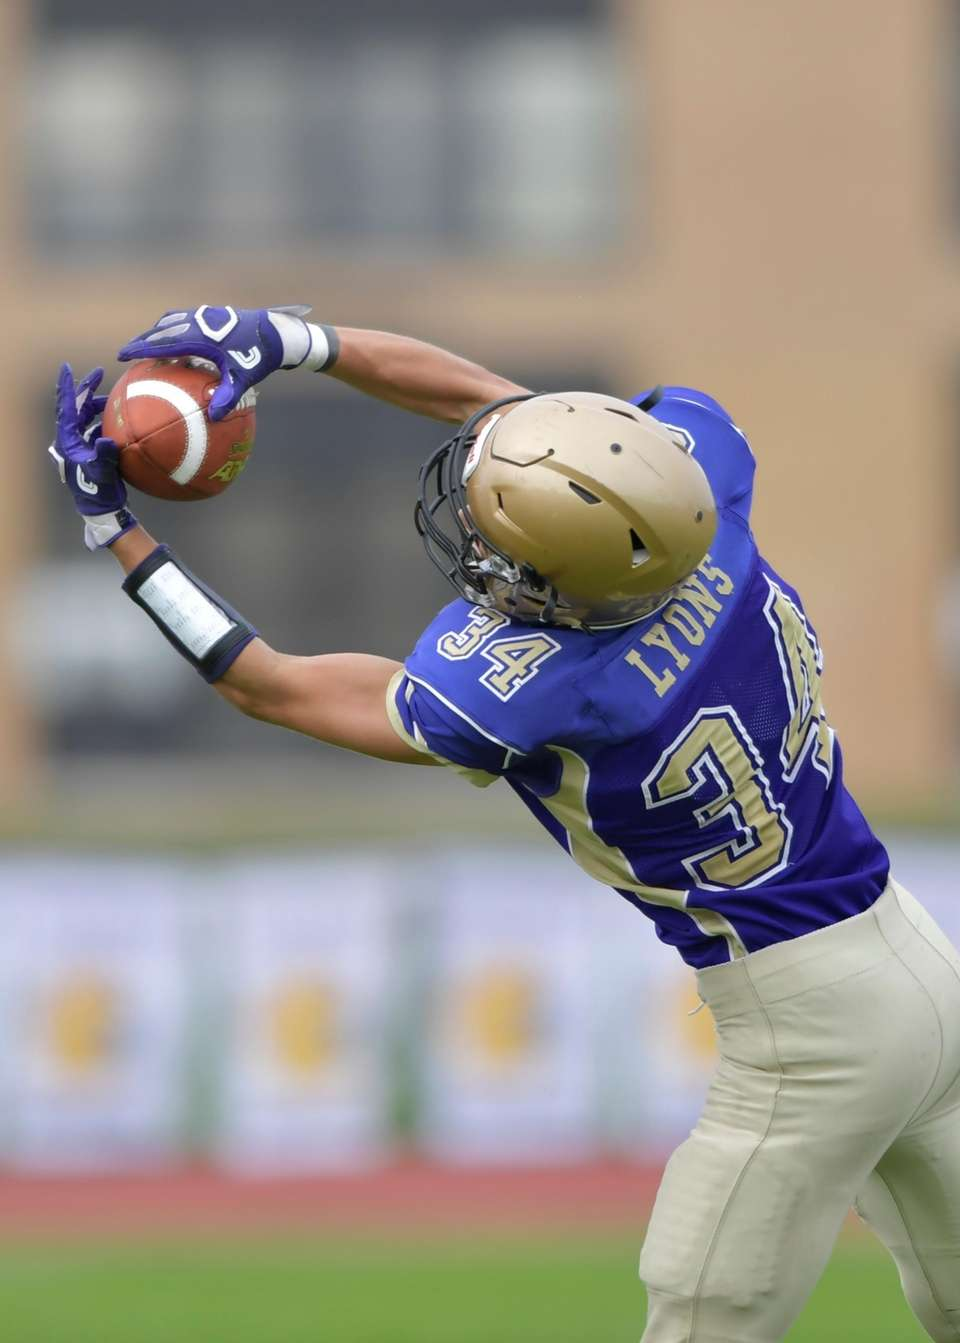 Sayville's James Lyons makes the catch during the